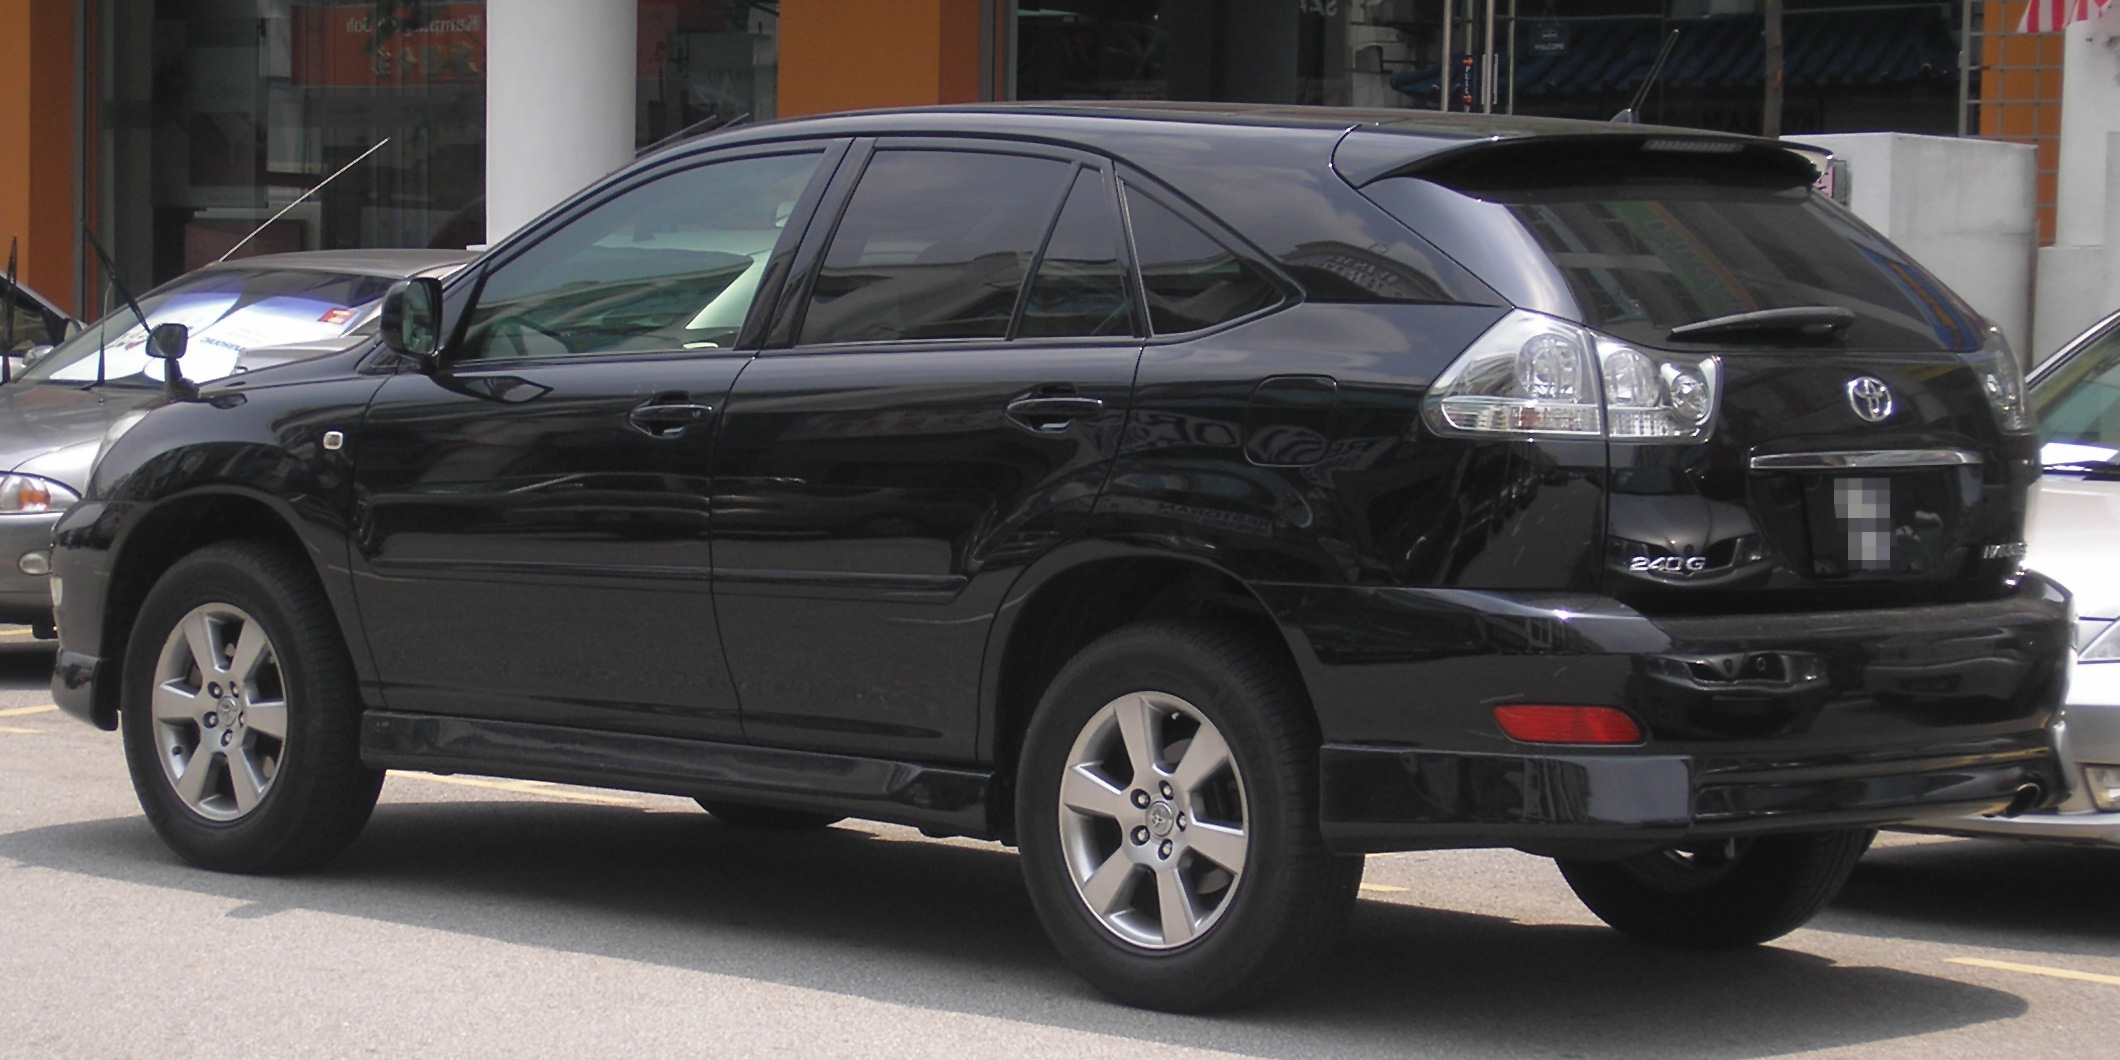 Toyota Harrier 2007 photo - 5